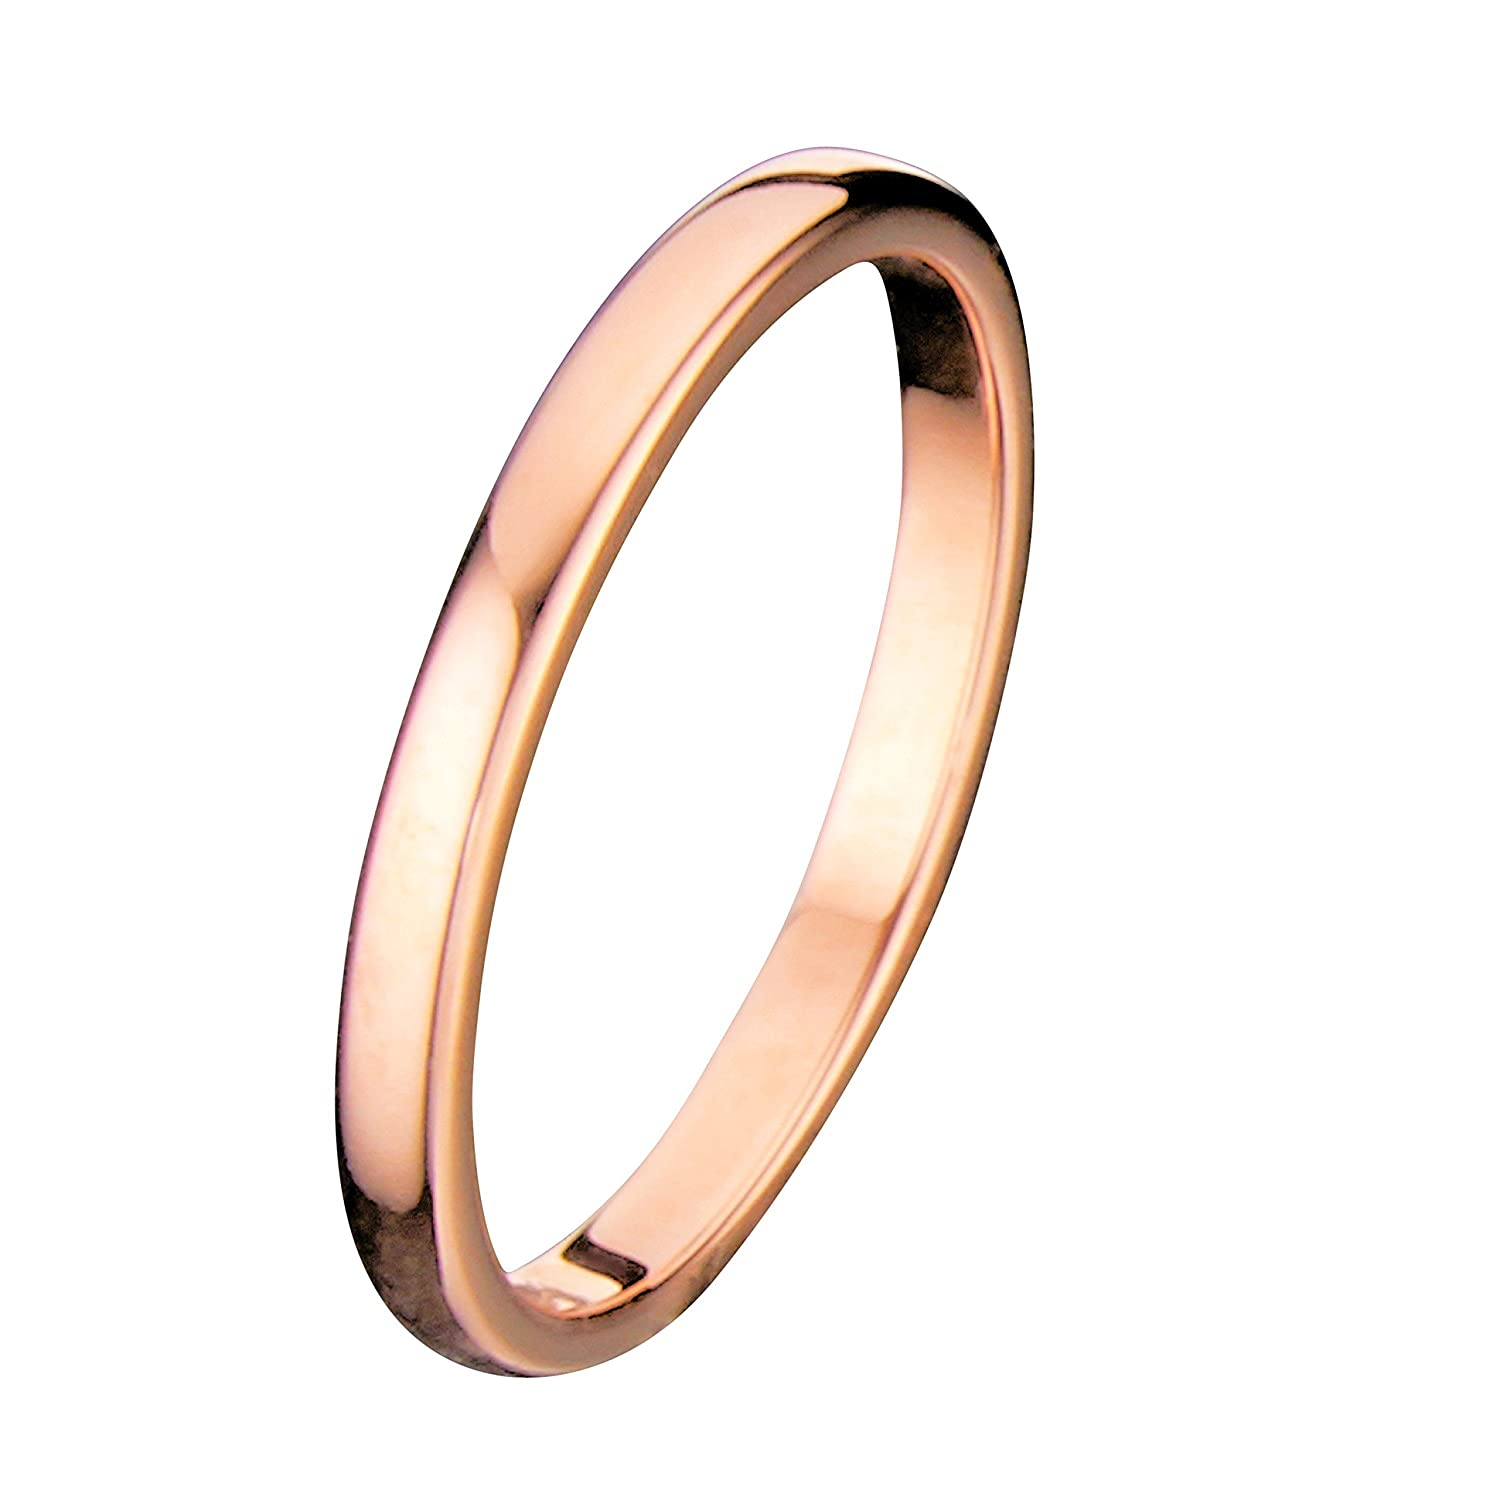 lilia wg slim rose jewellery square thin flat band product nash wedding gold bands profile ring